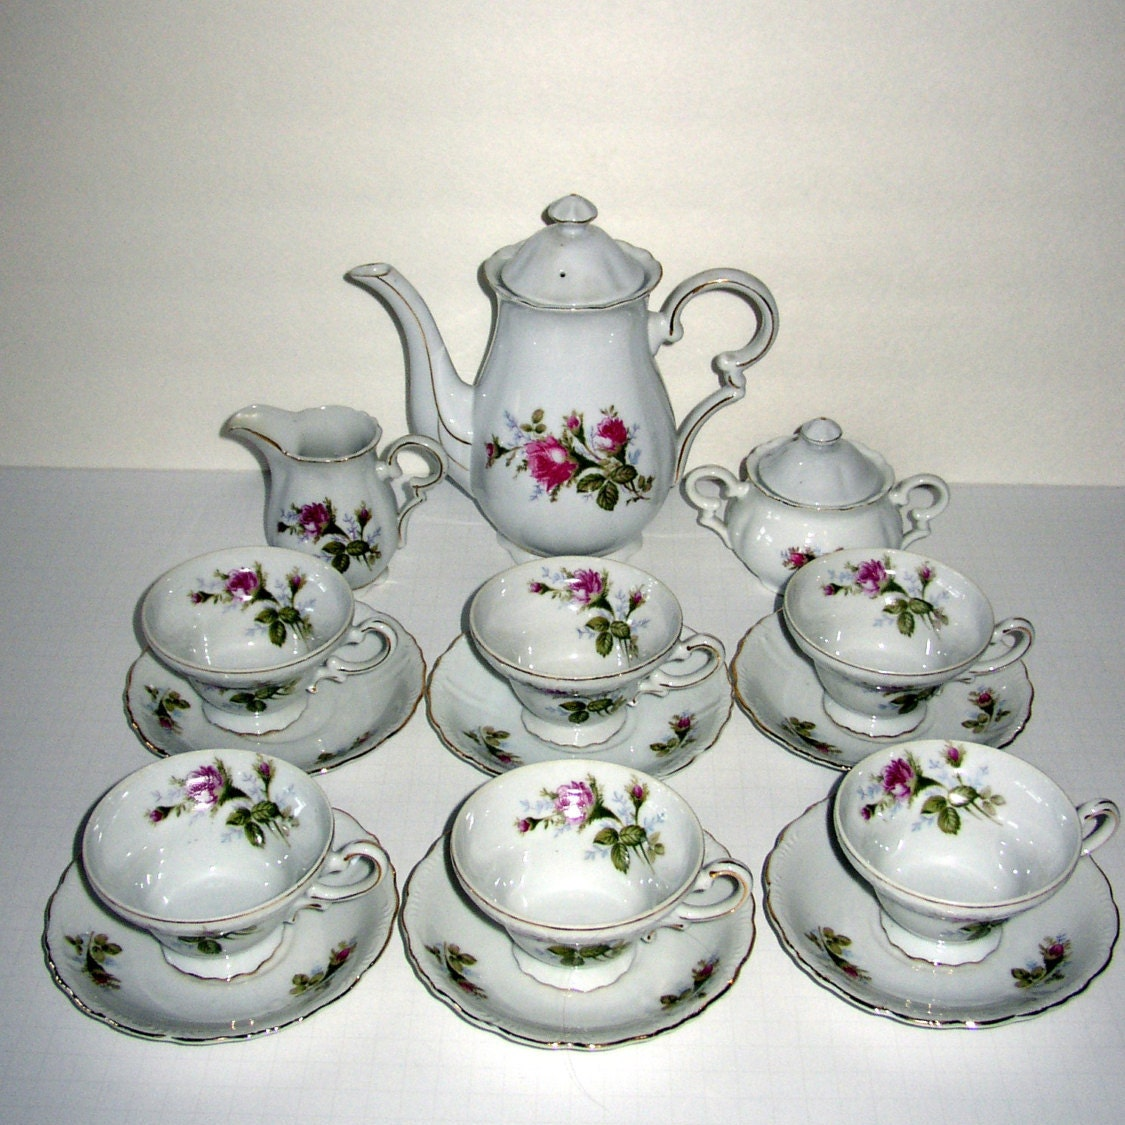 Vintage Tea Set Royal Sealy China Made in Japan Moss Rose